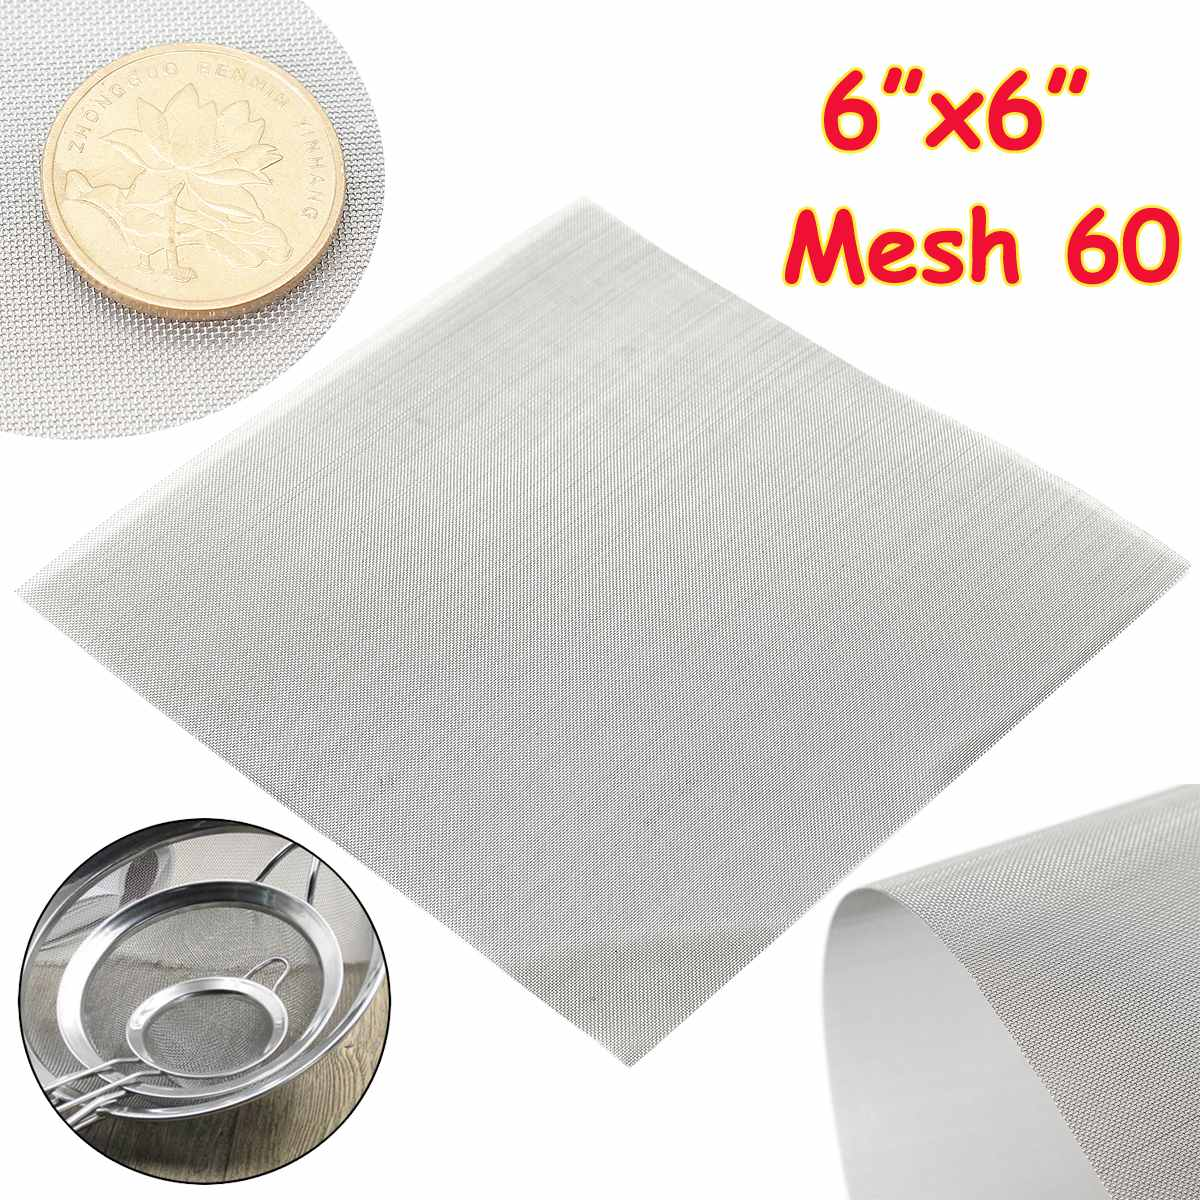 1pc 15x15cm 304 Stainless Steel Woven Wire High Quality <font><b>Screening</b></font> Filter Sheet 60 Mesh image